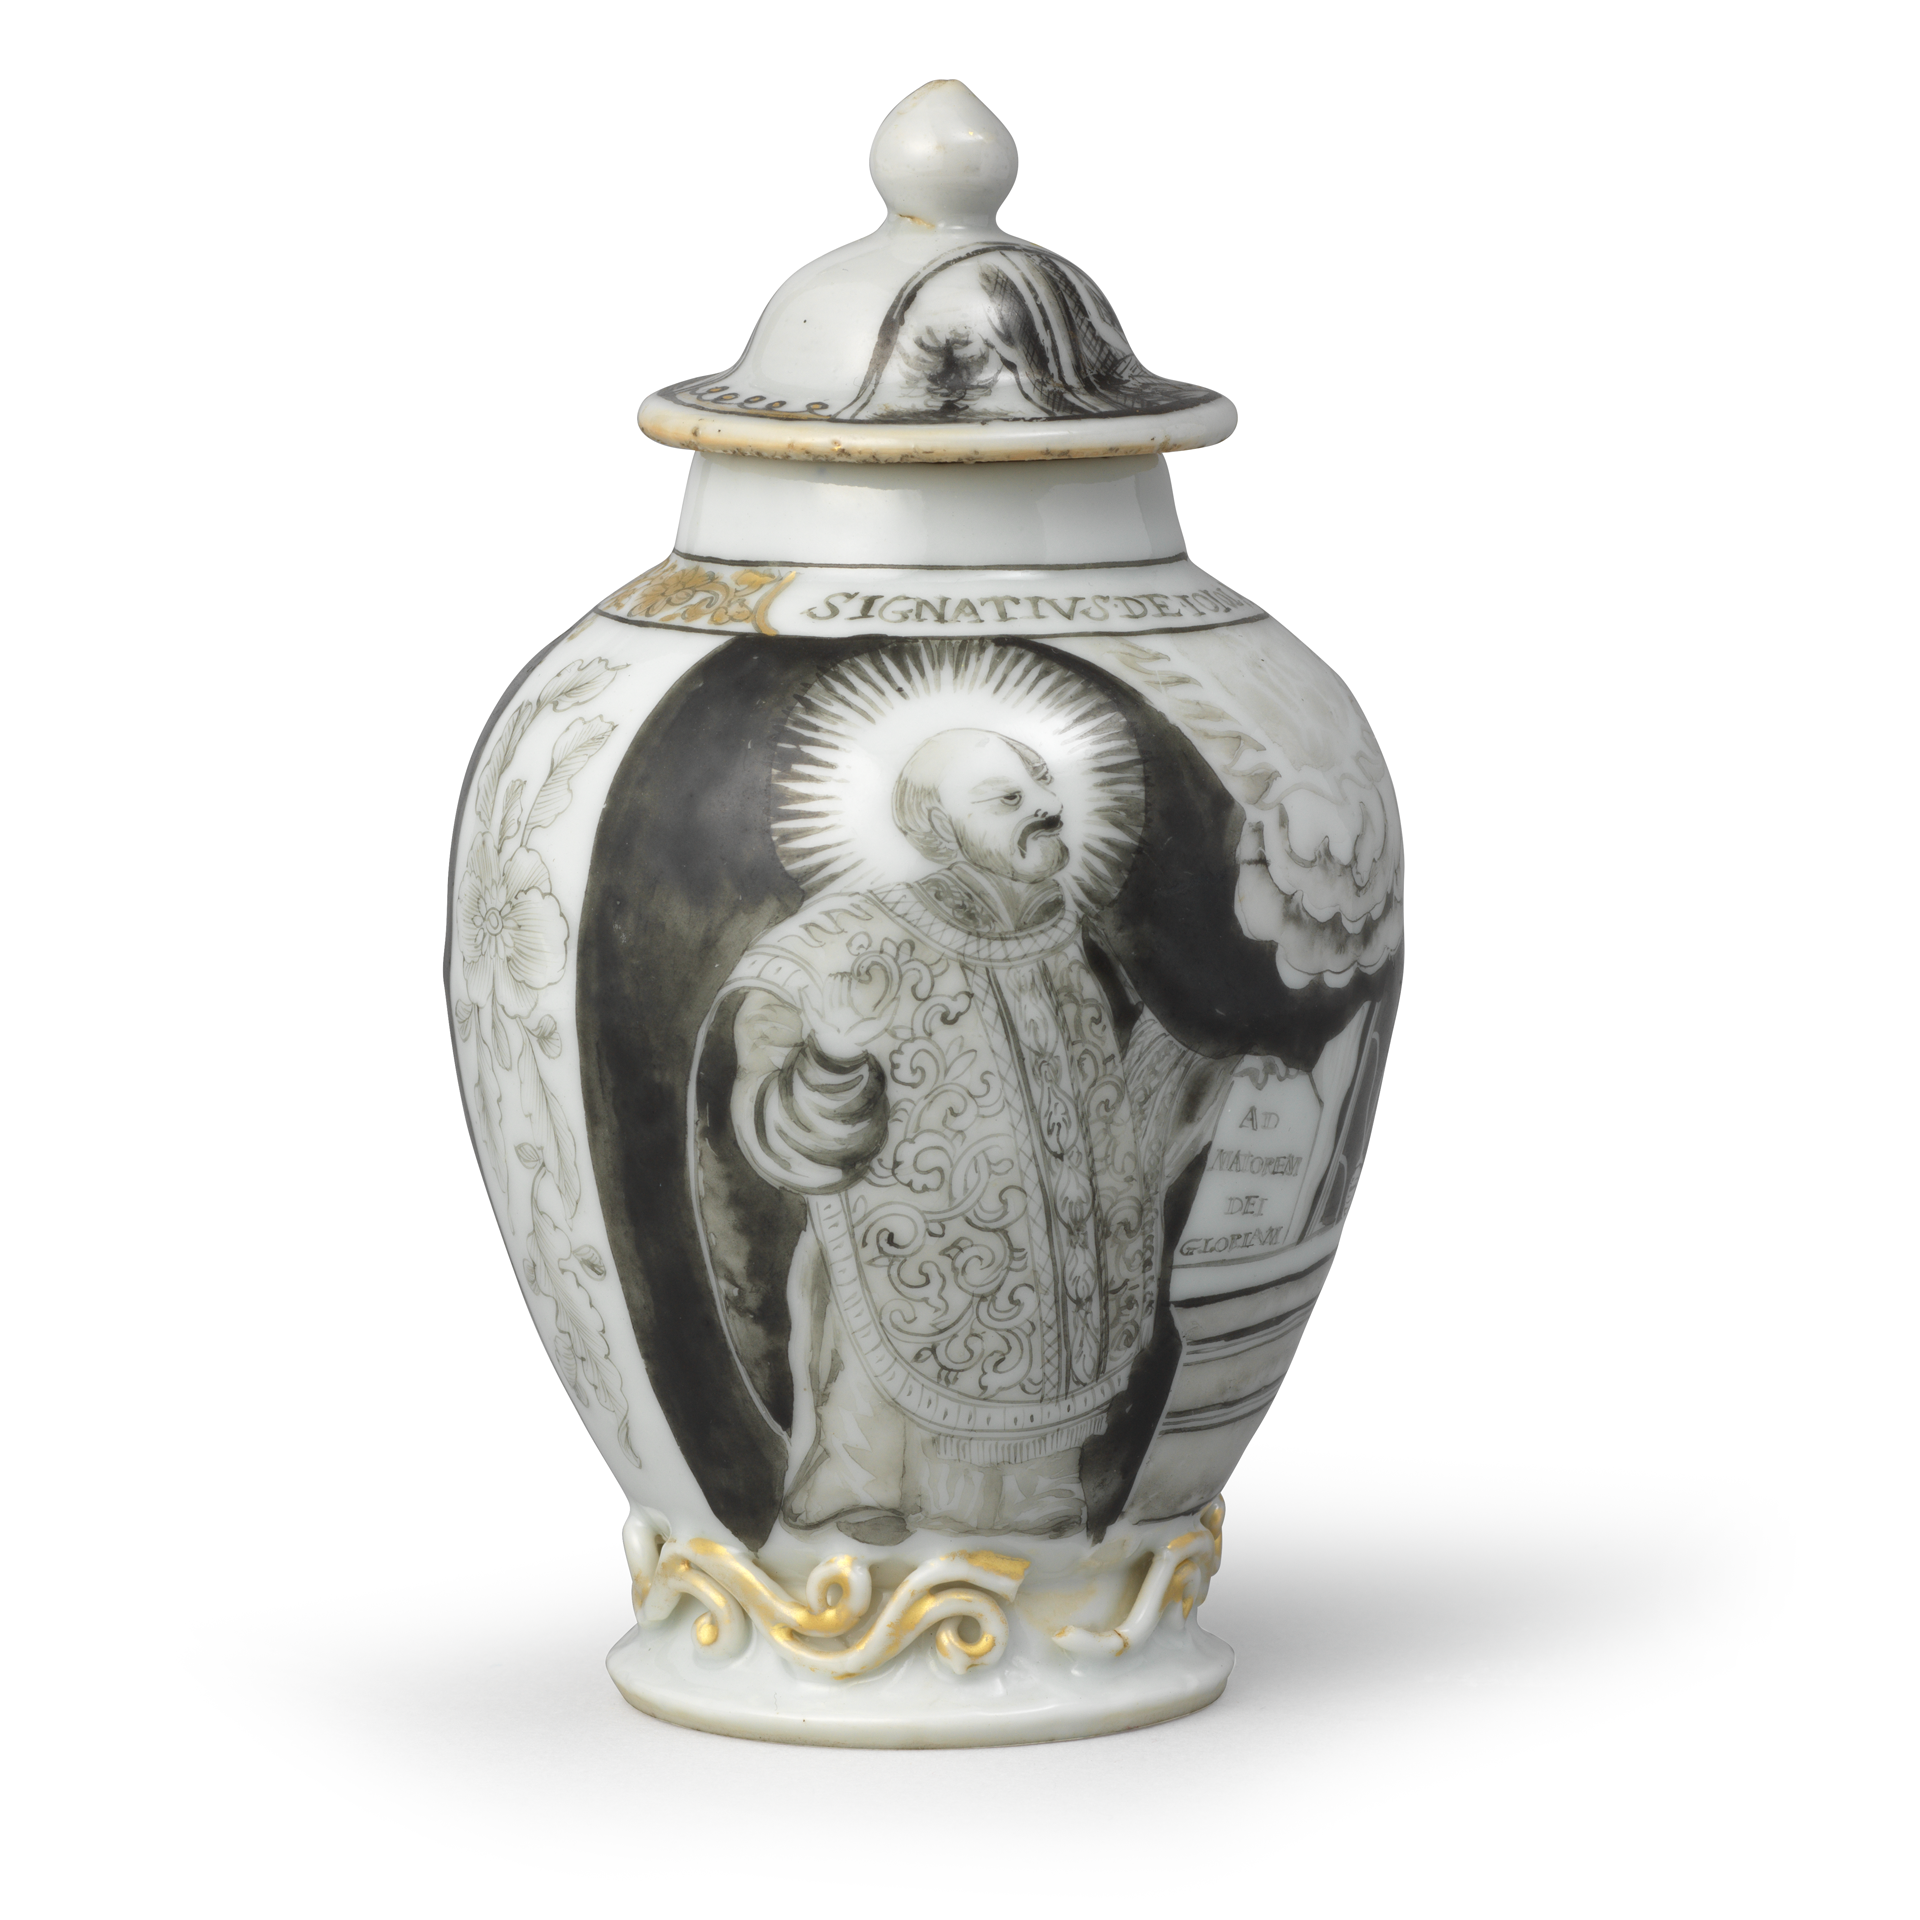 Tea Canister and Related Cover with portrait of St. Ignatius Loyola, Porcelain decorated in grisaille and gold, Qing dynasty, Qianlong period (1736-1795), ca. 1745